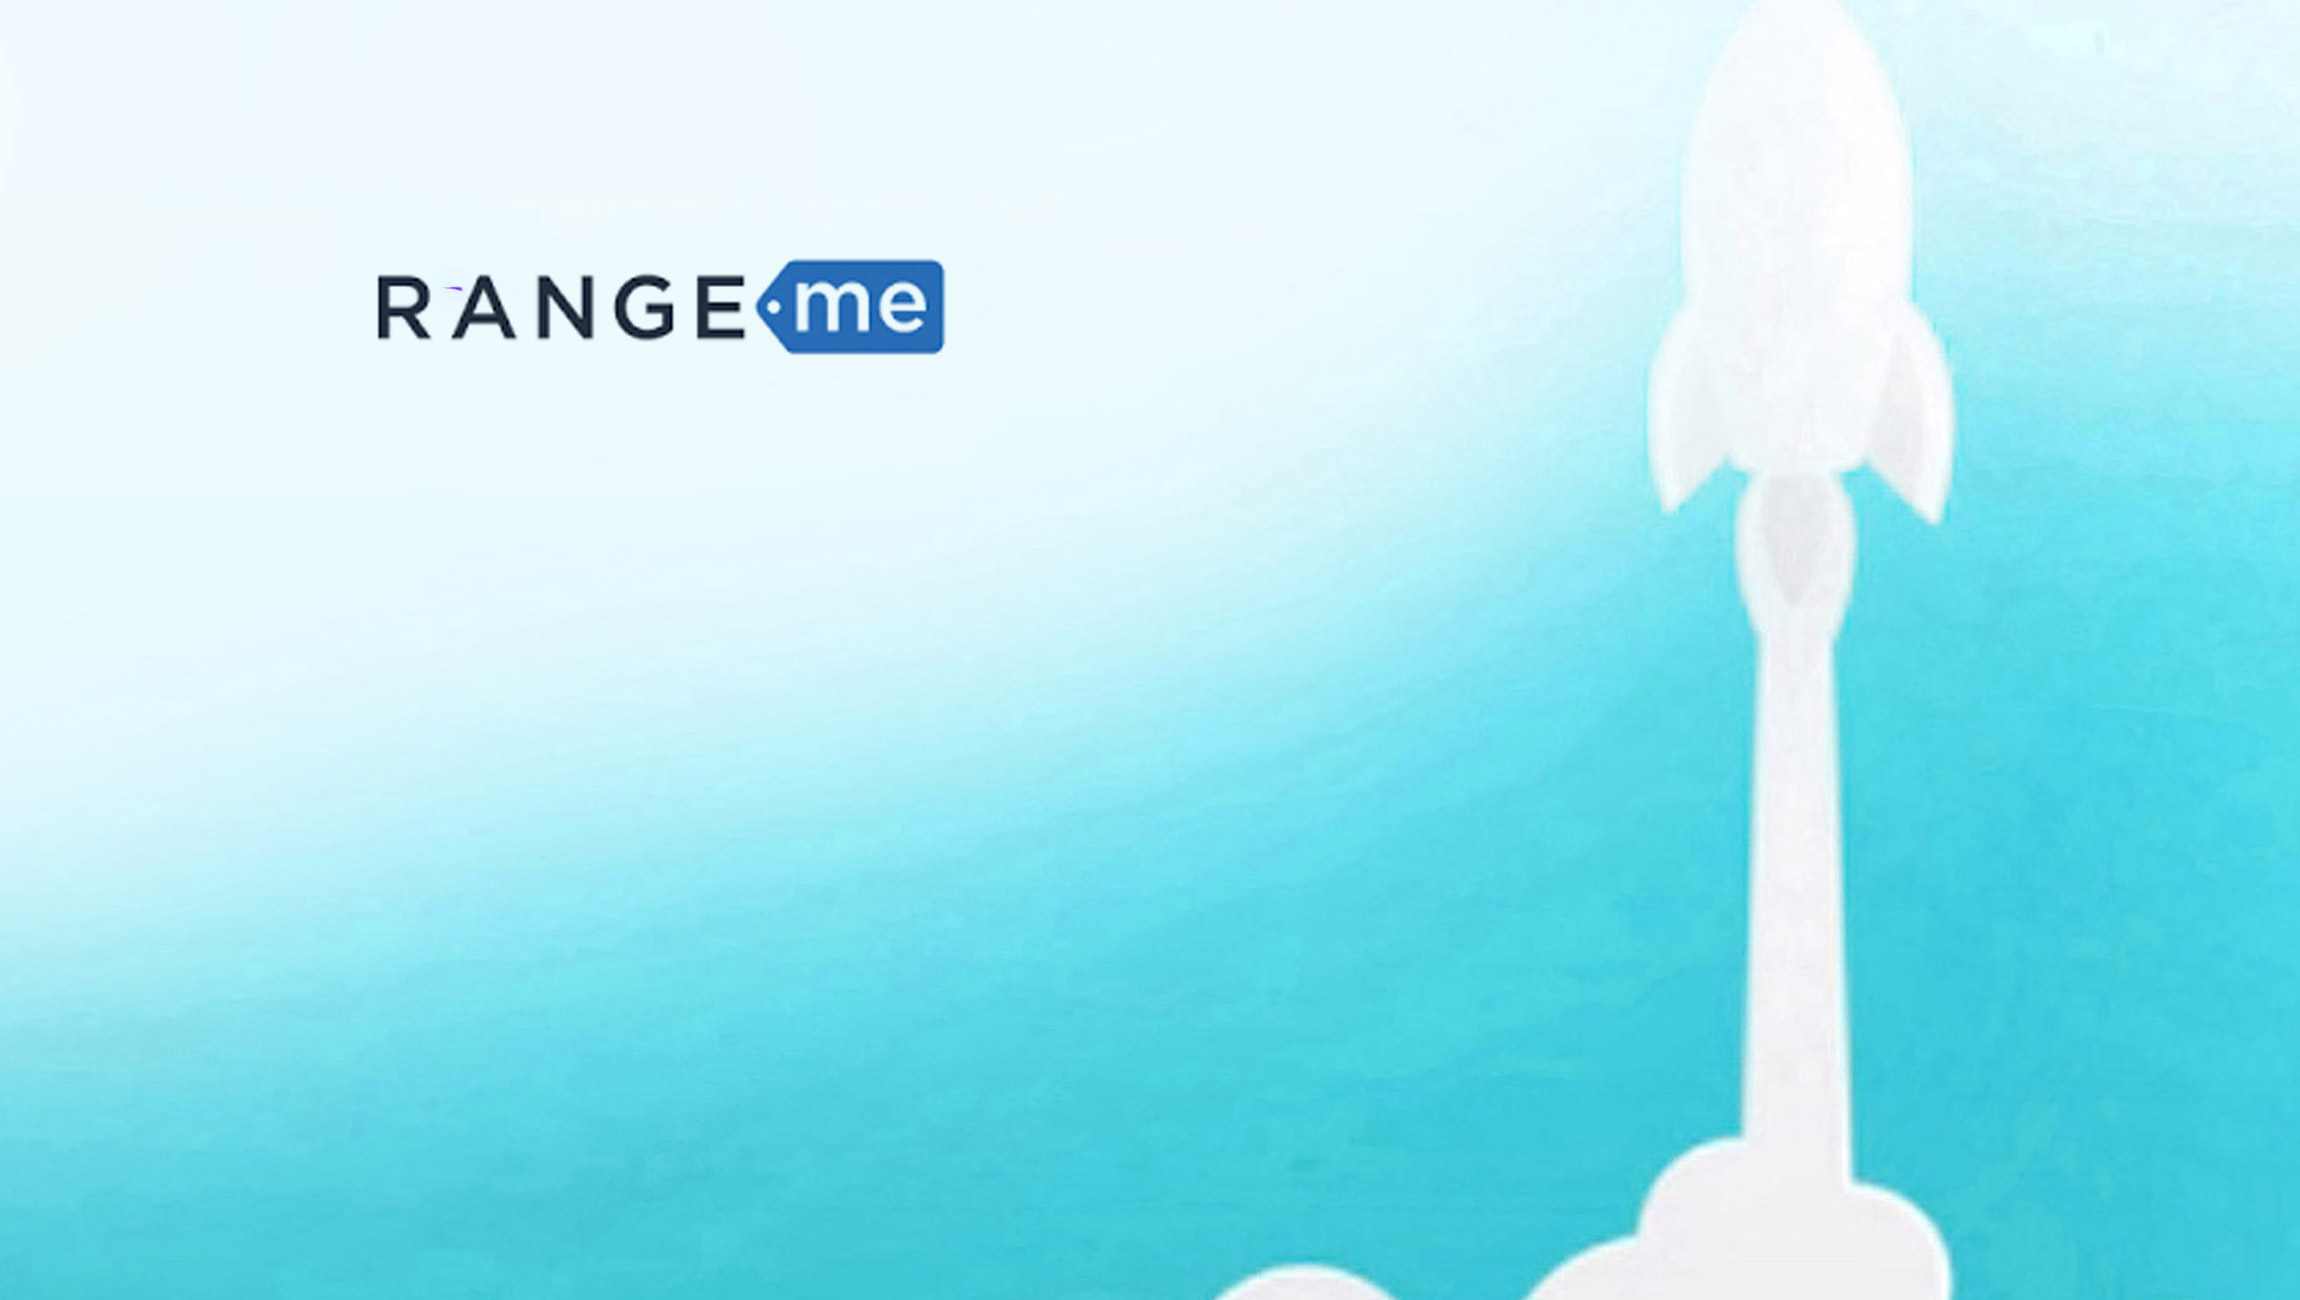 World's-Largest-Product-Discovery-Platform-for-Retailers_-RangeMe_-Expands-into-Europe_-Launching-Across-Benelux